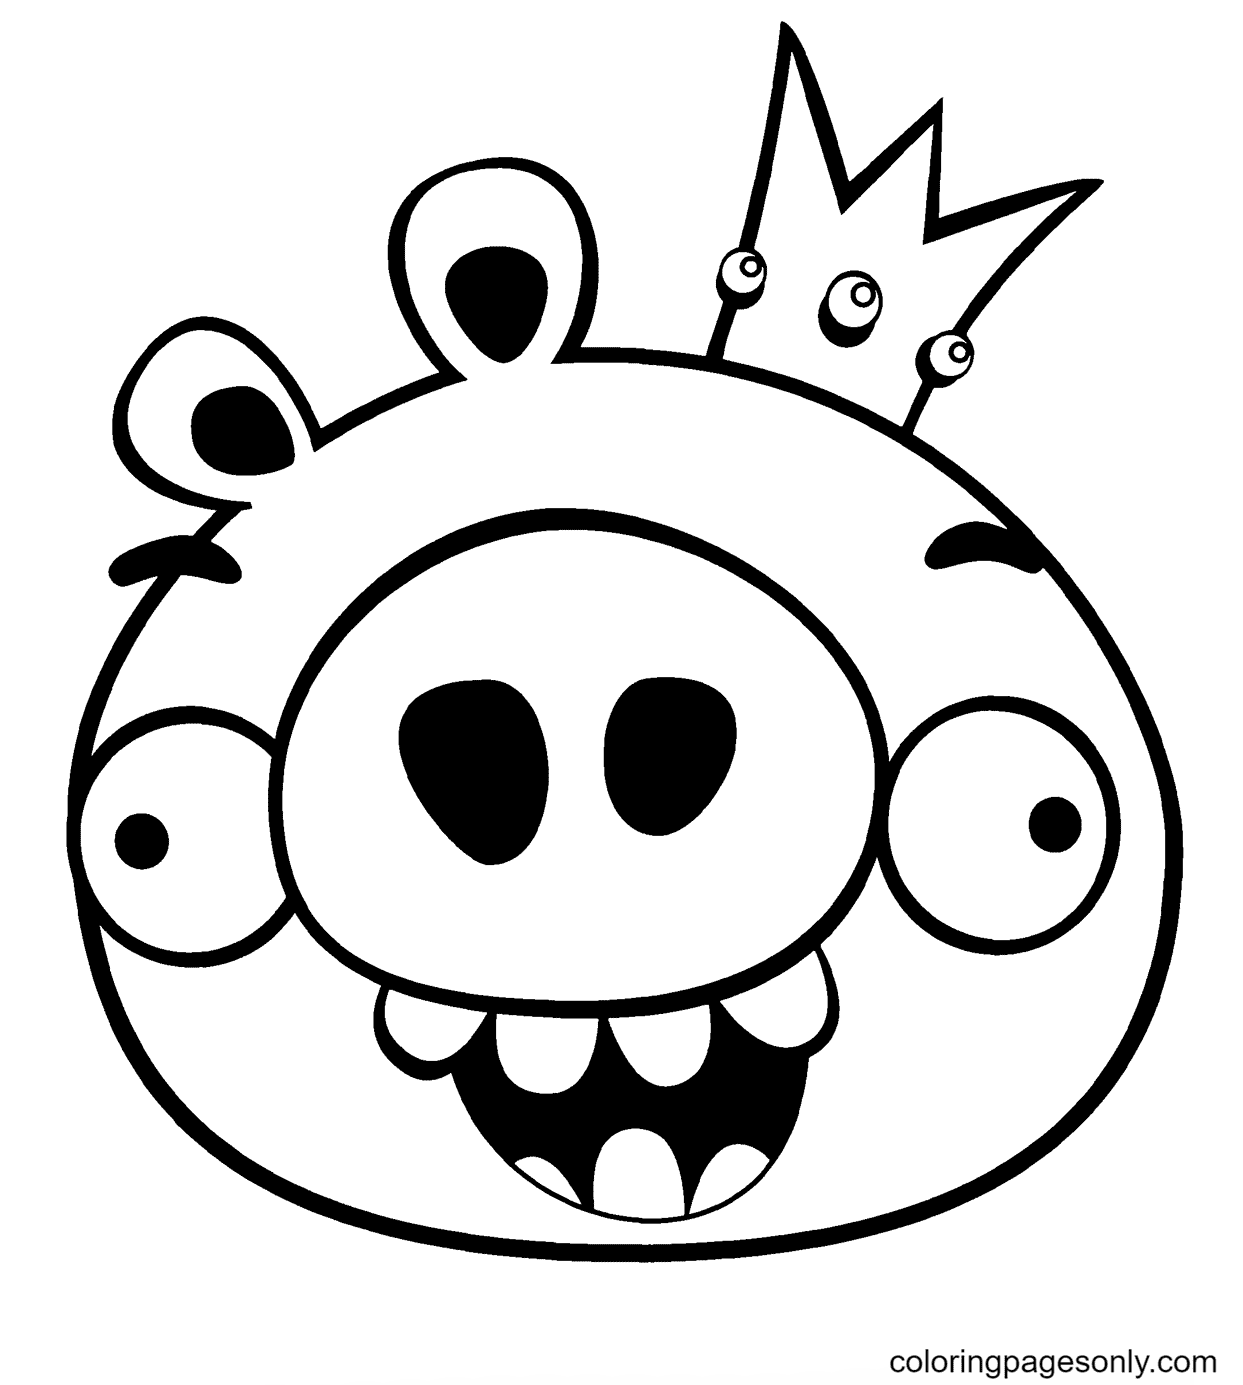 King Smoothcheeks Coloring Page